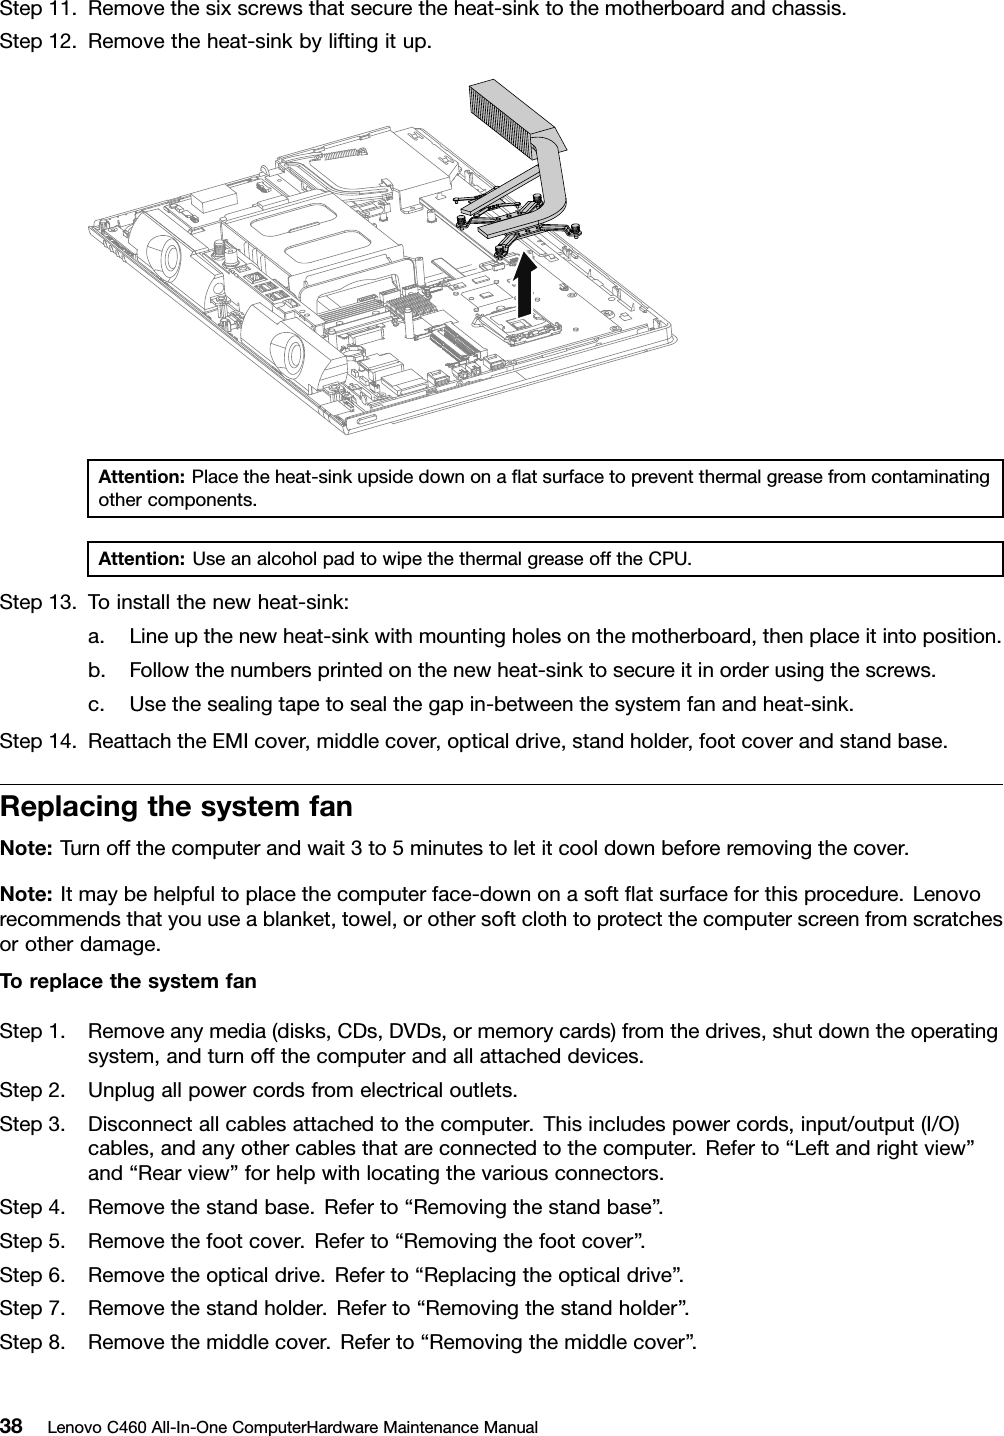 Lenovo C460 Hmm 20131107 User Manual All In One Computer